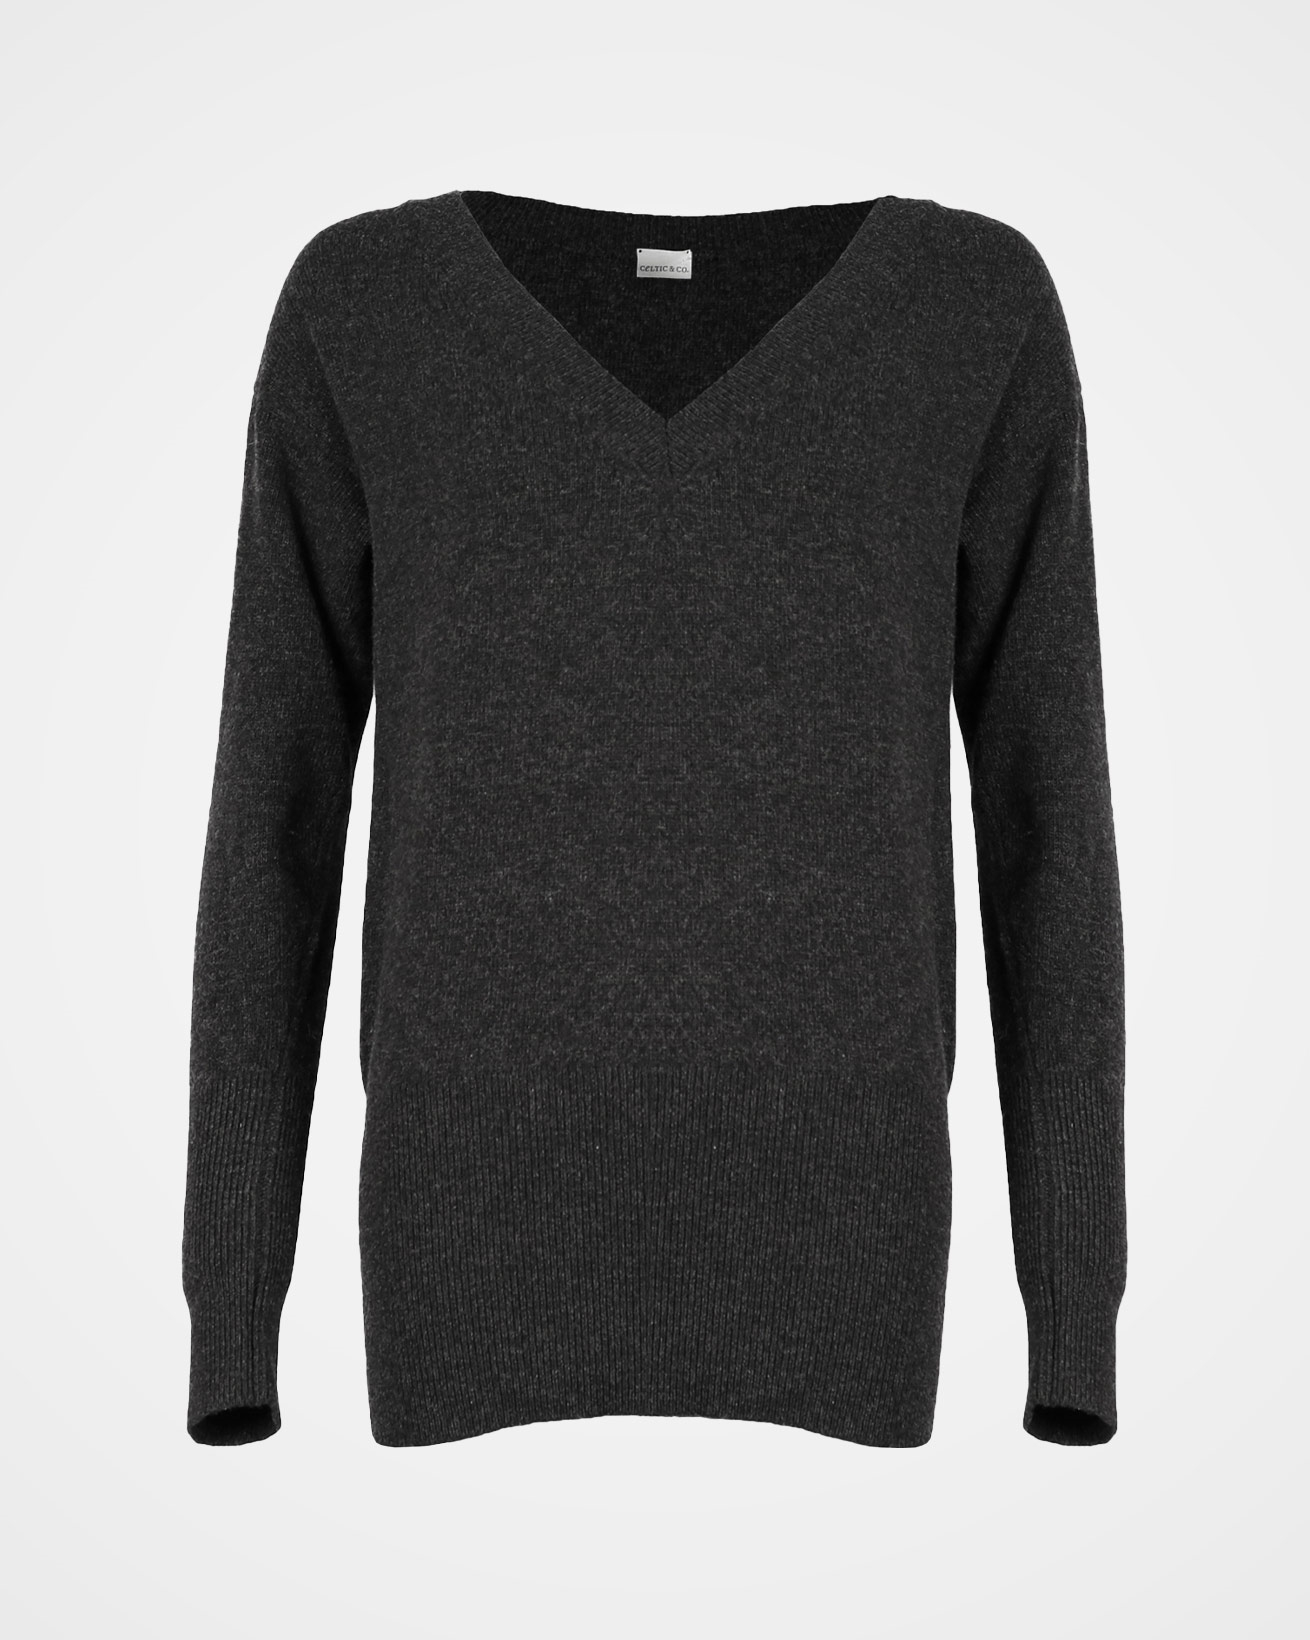 7659_supersoft-v-jumper_charcoal_front.jpg